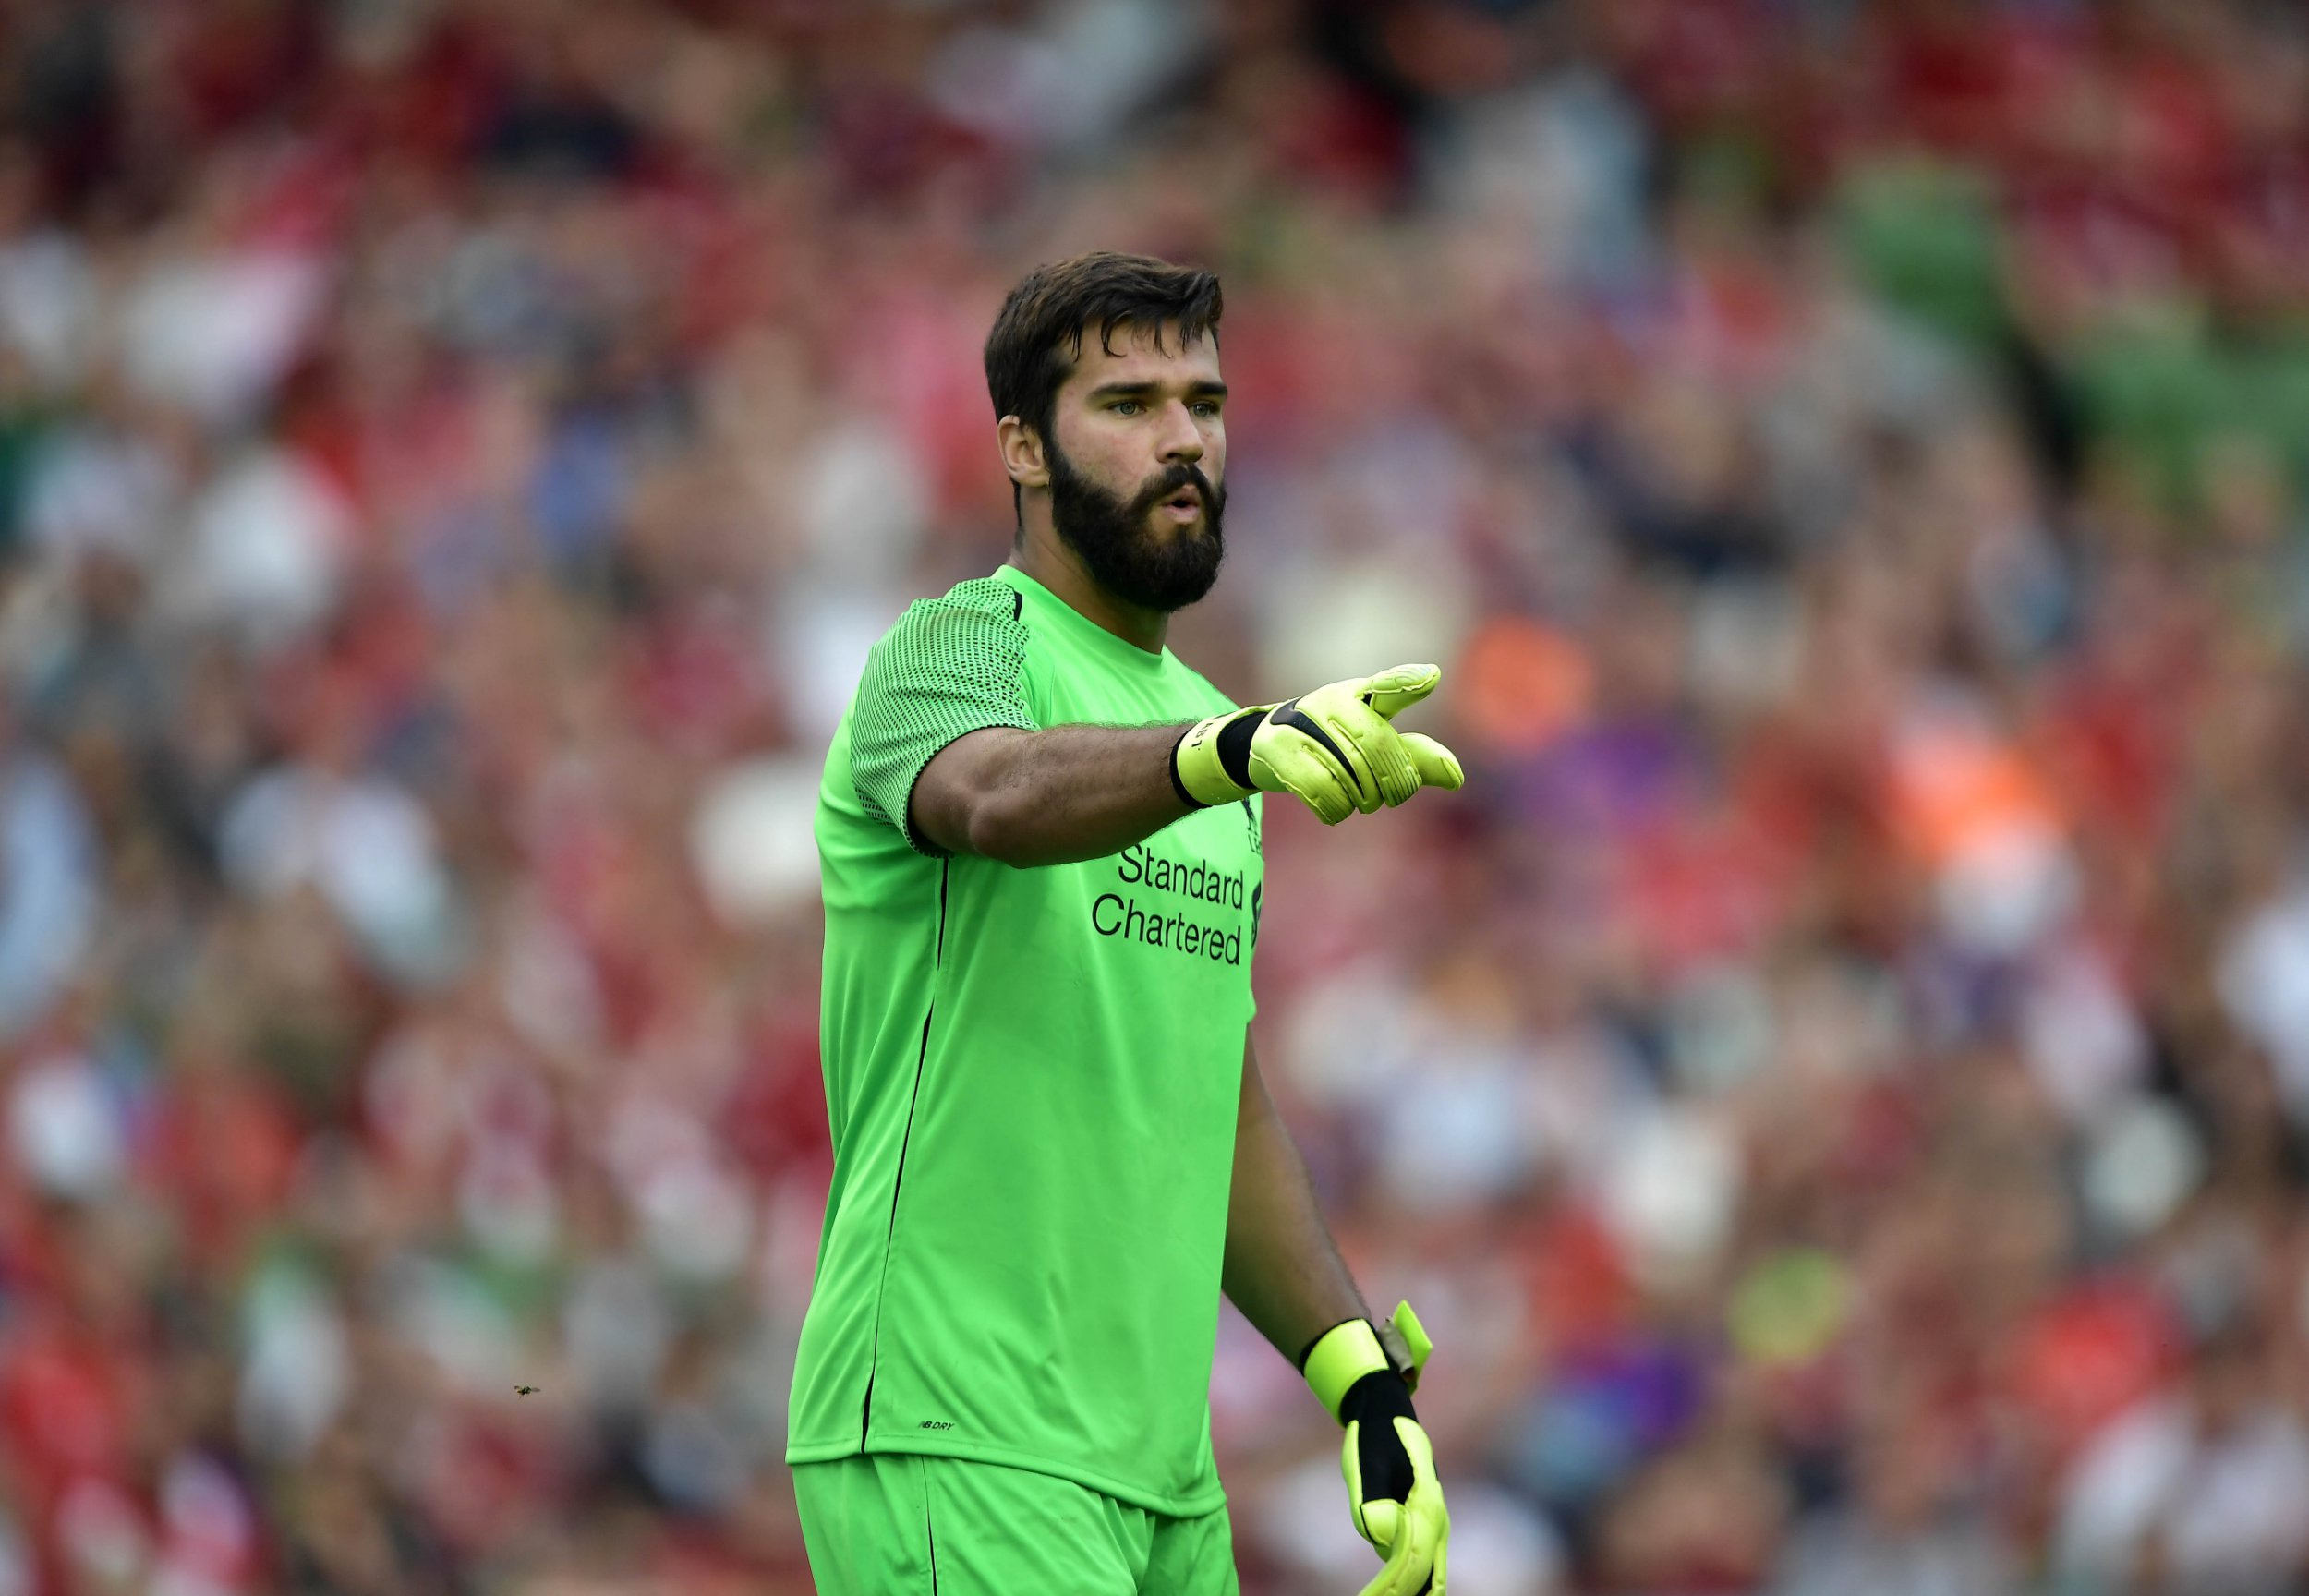 Liverpool legend Graeme Souness questions Jurgen Klopp's decision to sign Alisson for £65m